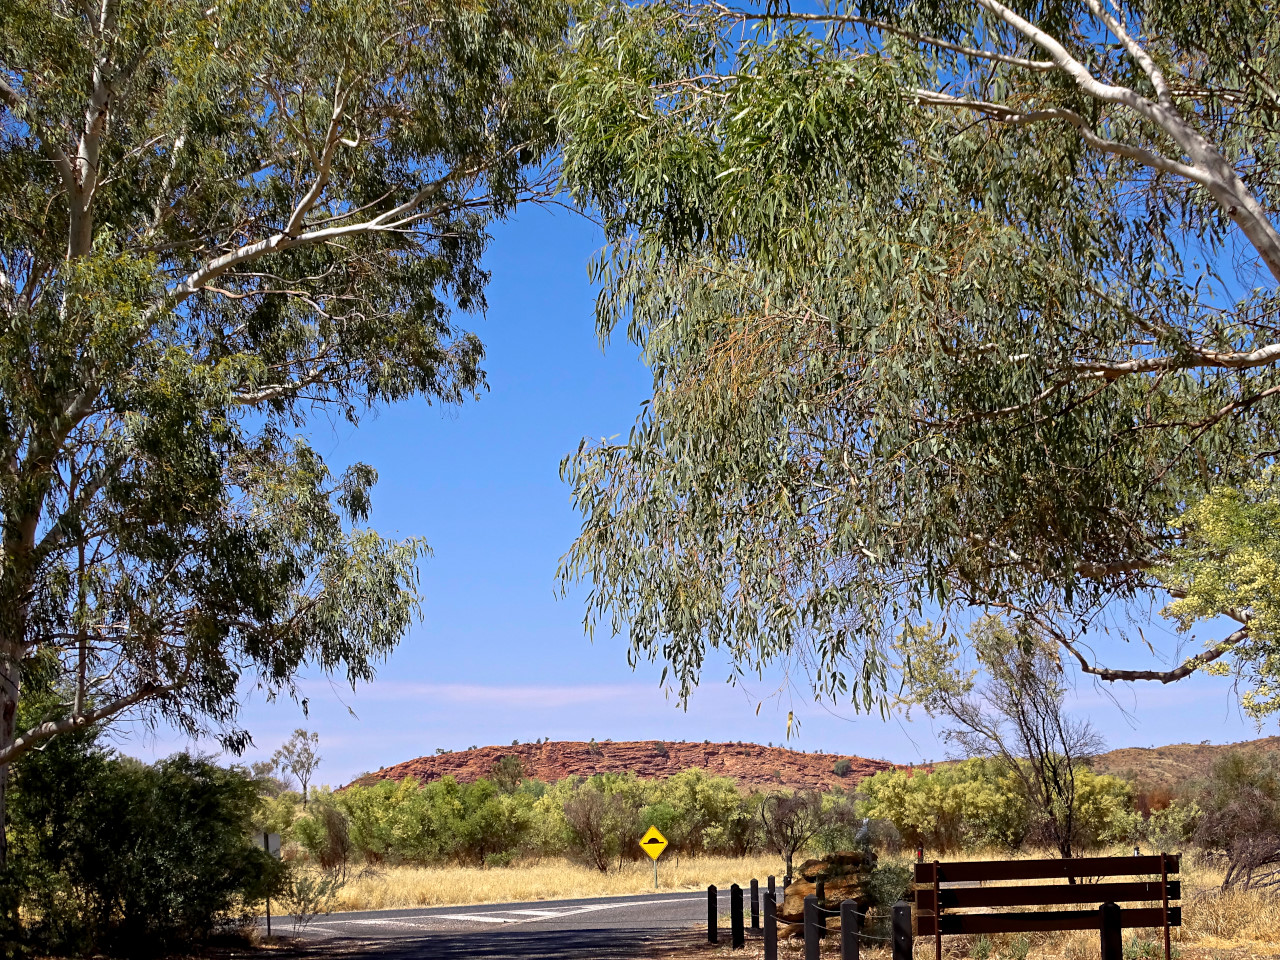 Central Australia trees and road